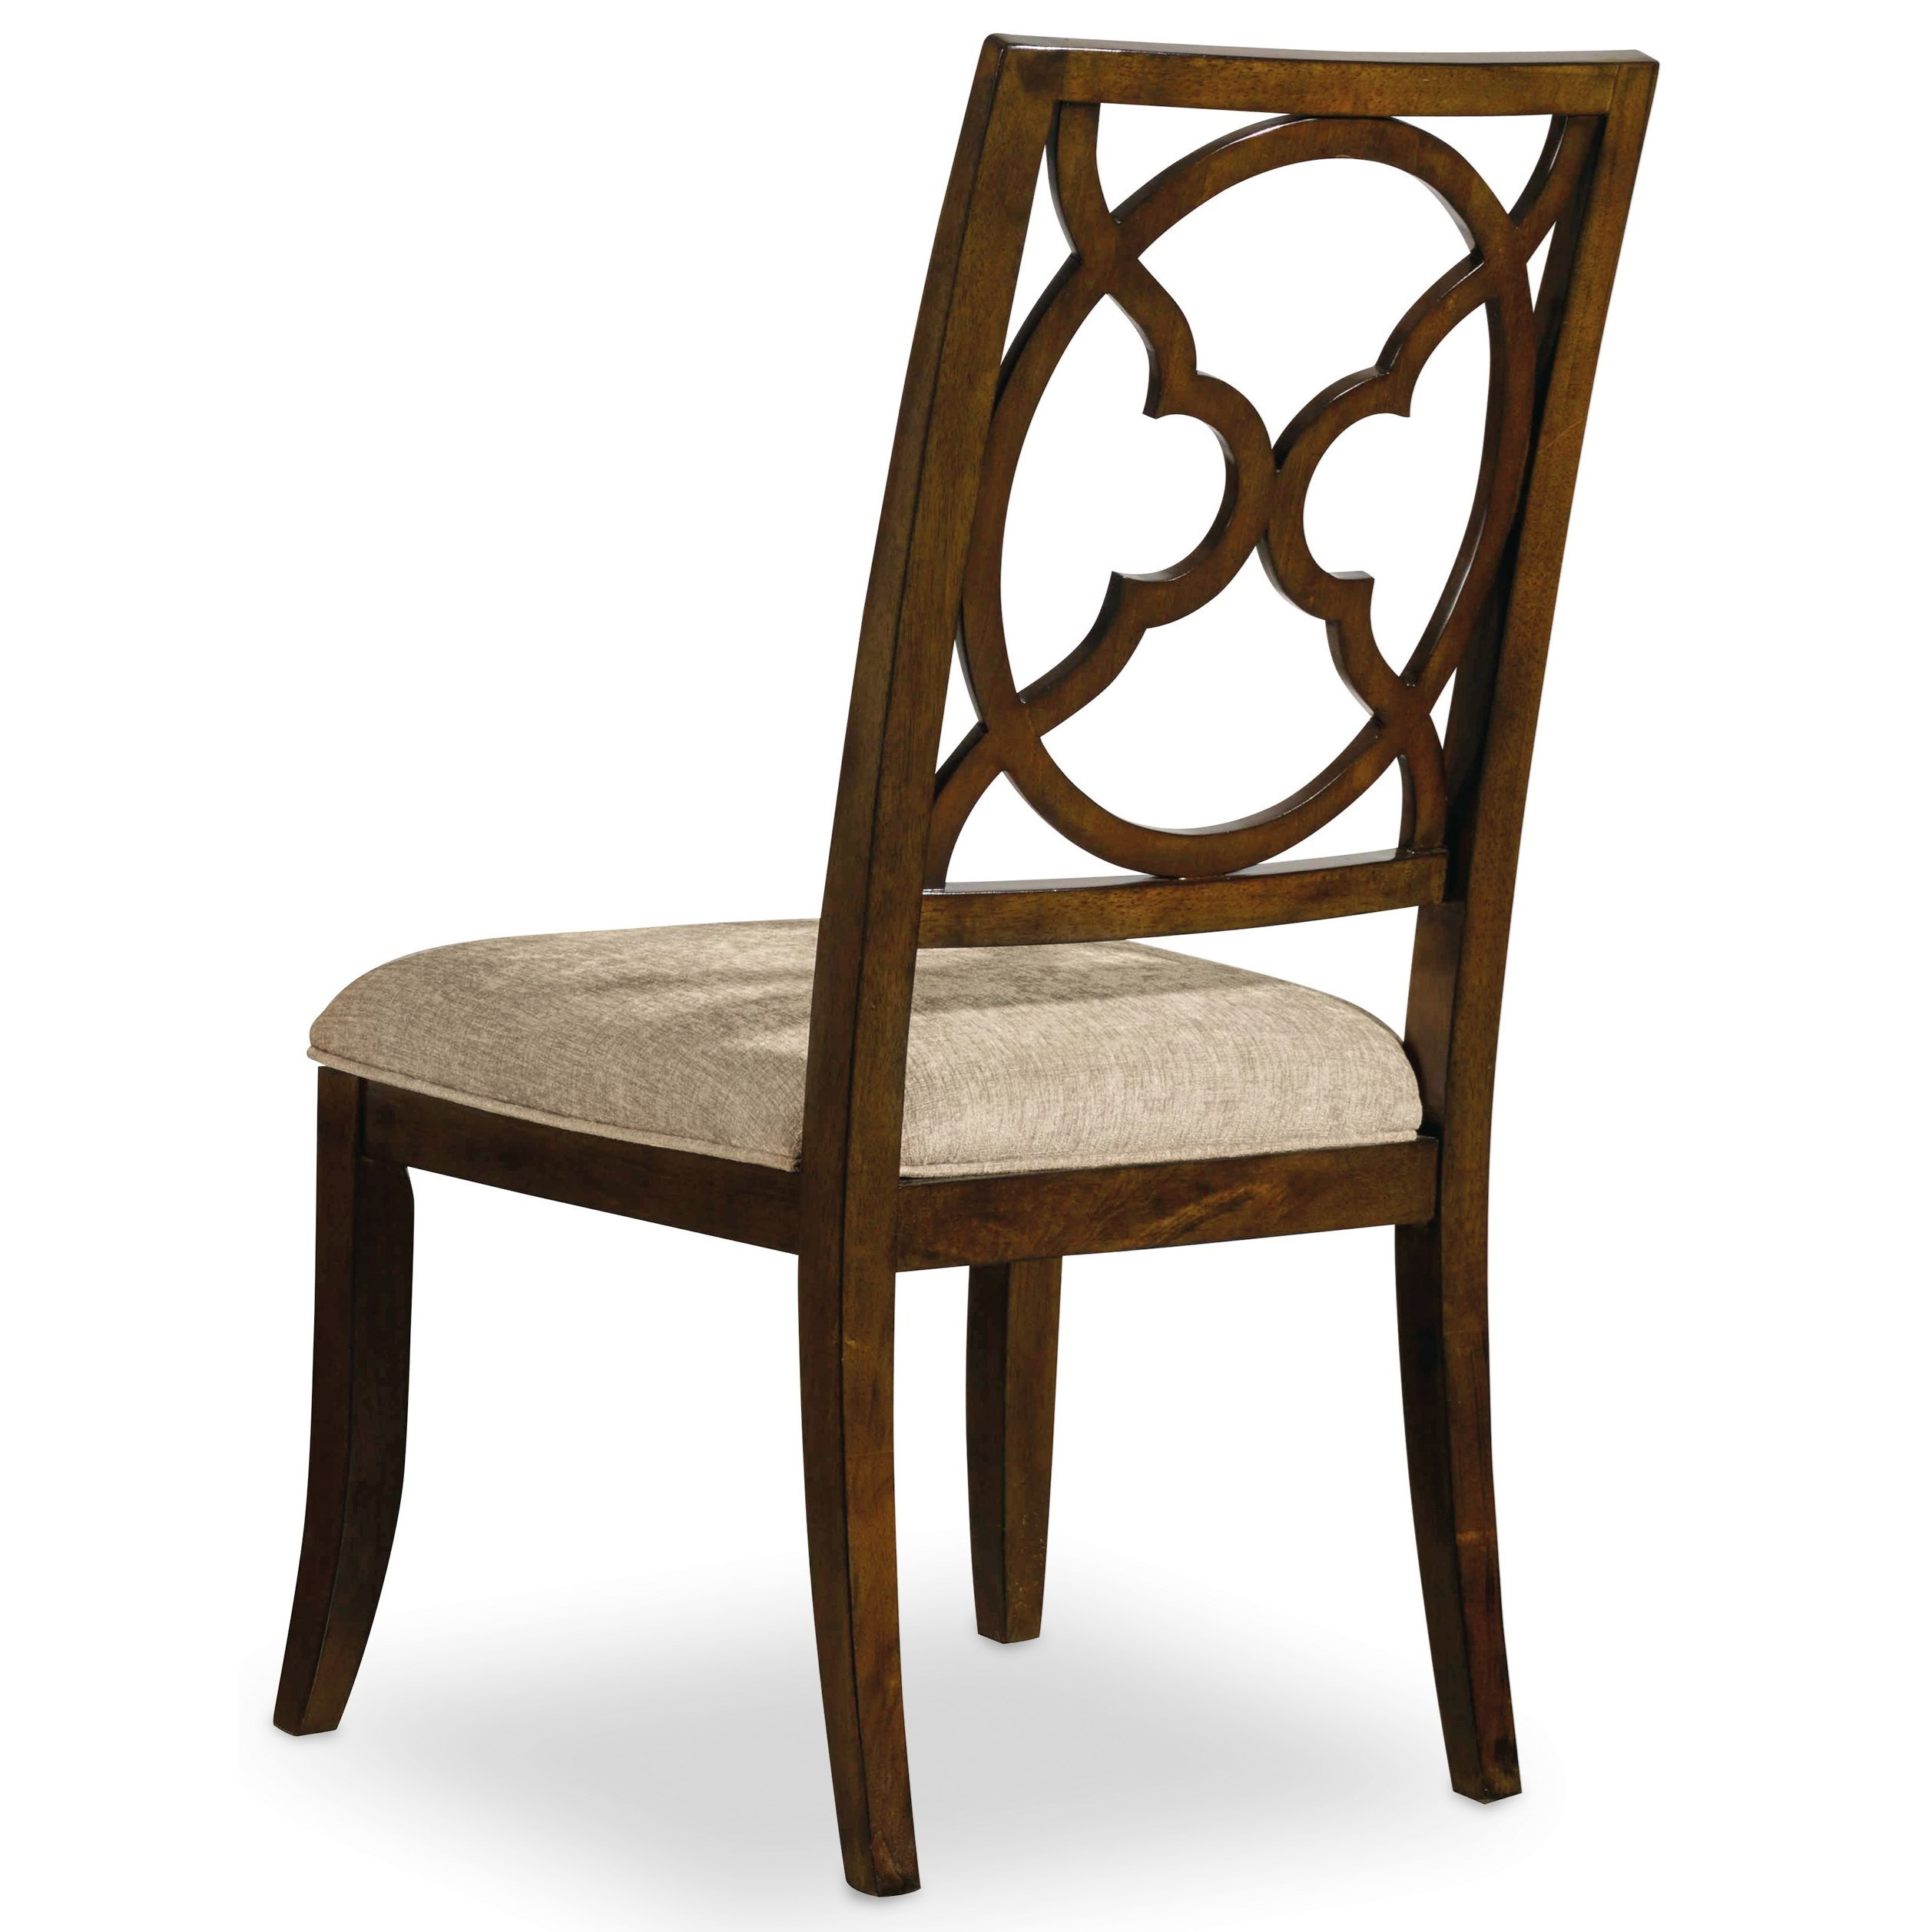 Hooker Furniture Skyline Fretback Side Chair - Item Number: 5336-75310